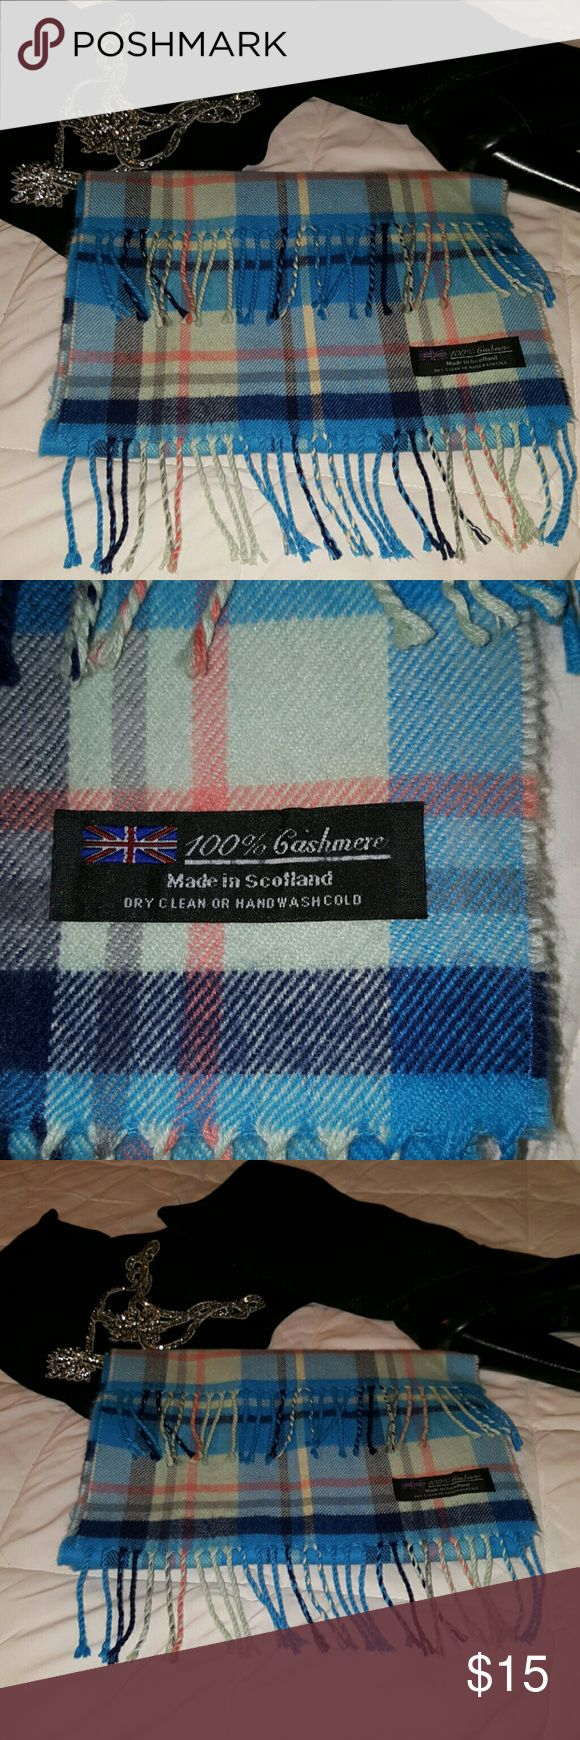 100% Cashmere Scarf, lovely hues of blue and pink A beautiful scarf. Blues, black, pink and cream colors. Made in Scotland. Great condition. Warm! Accessories Scarves & Wraps